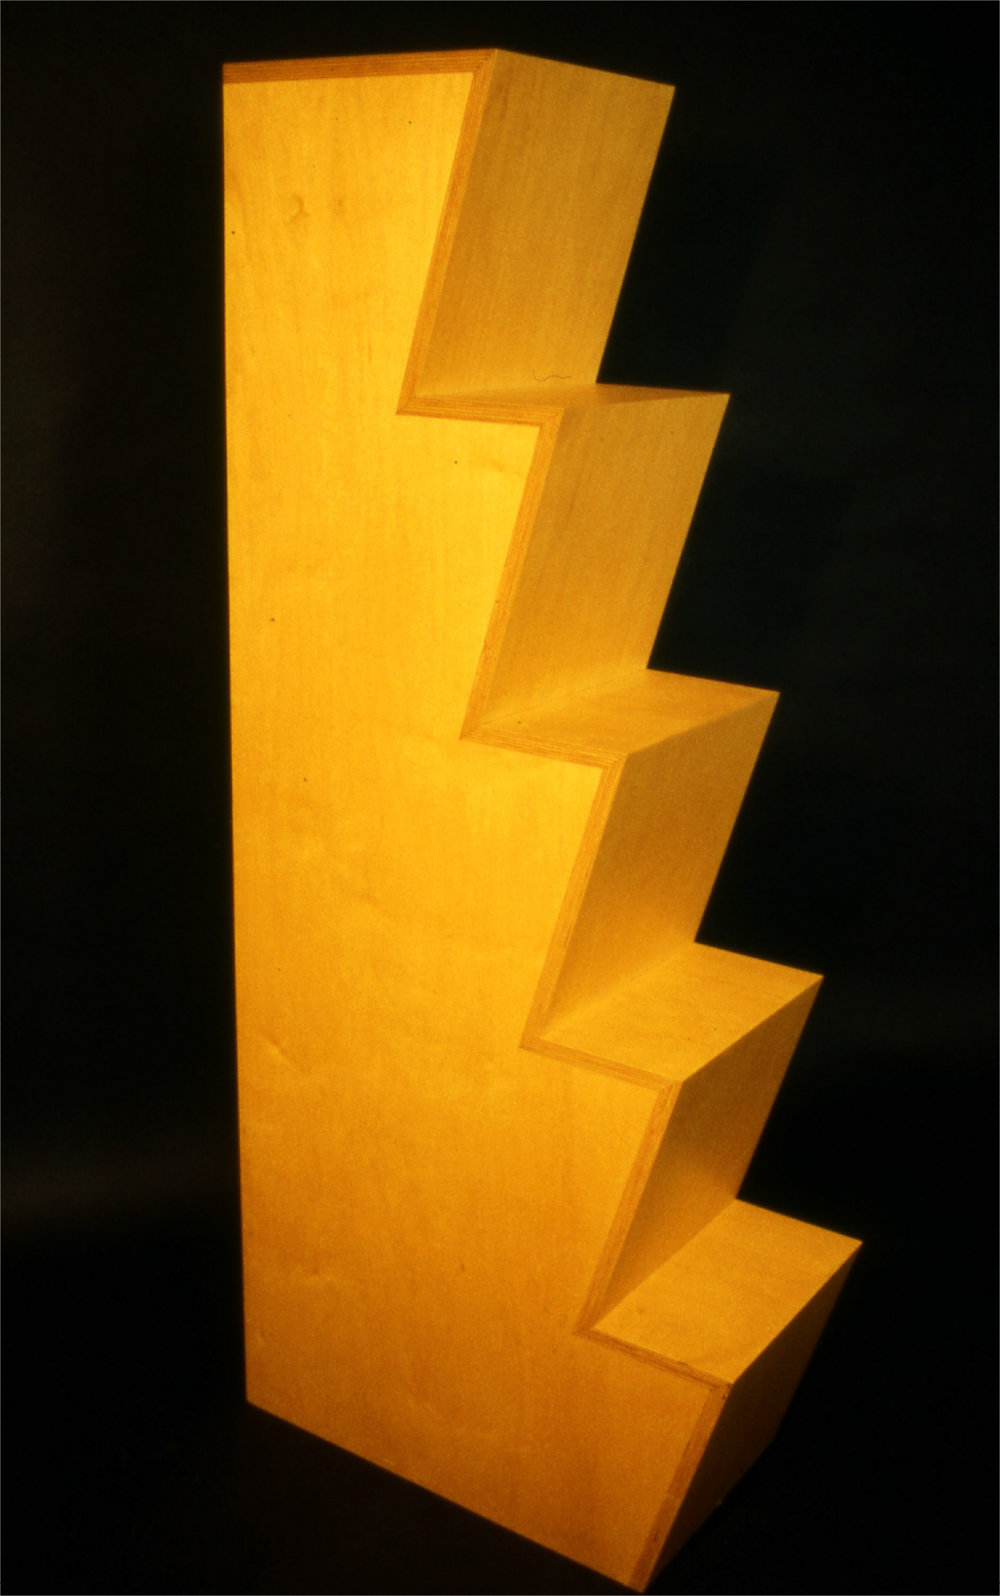 Furniture Glyph Stair Cabinet 2a.jpg